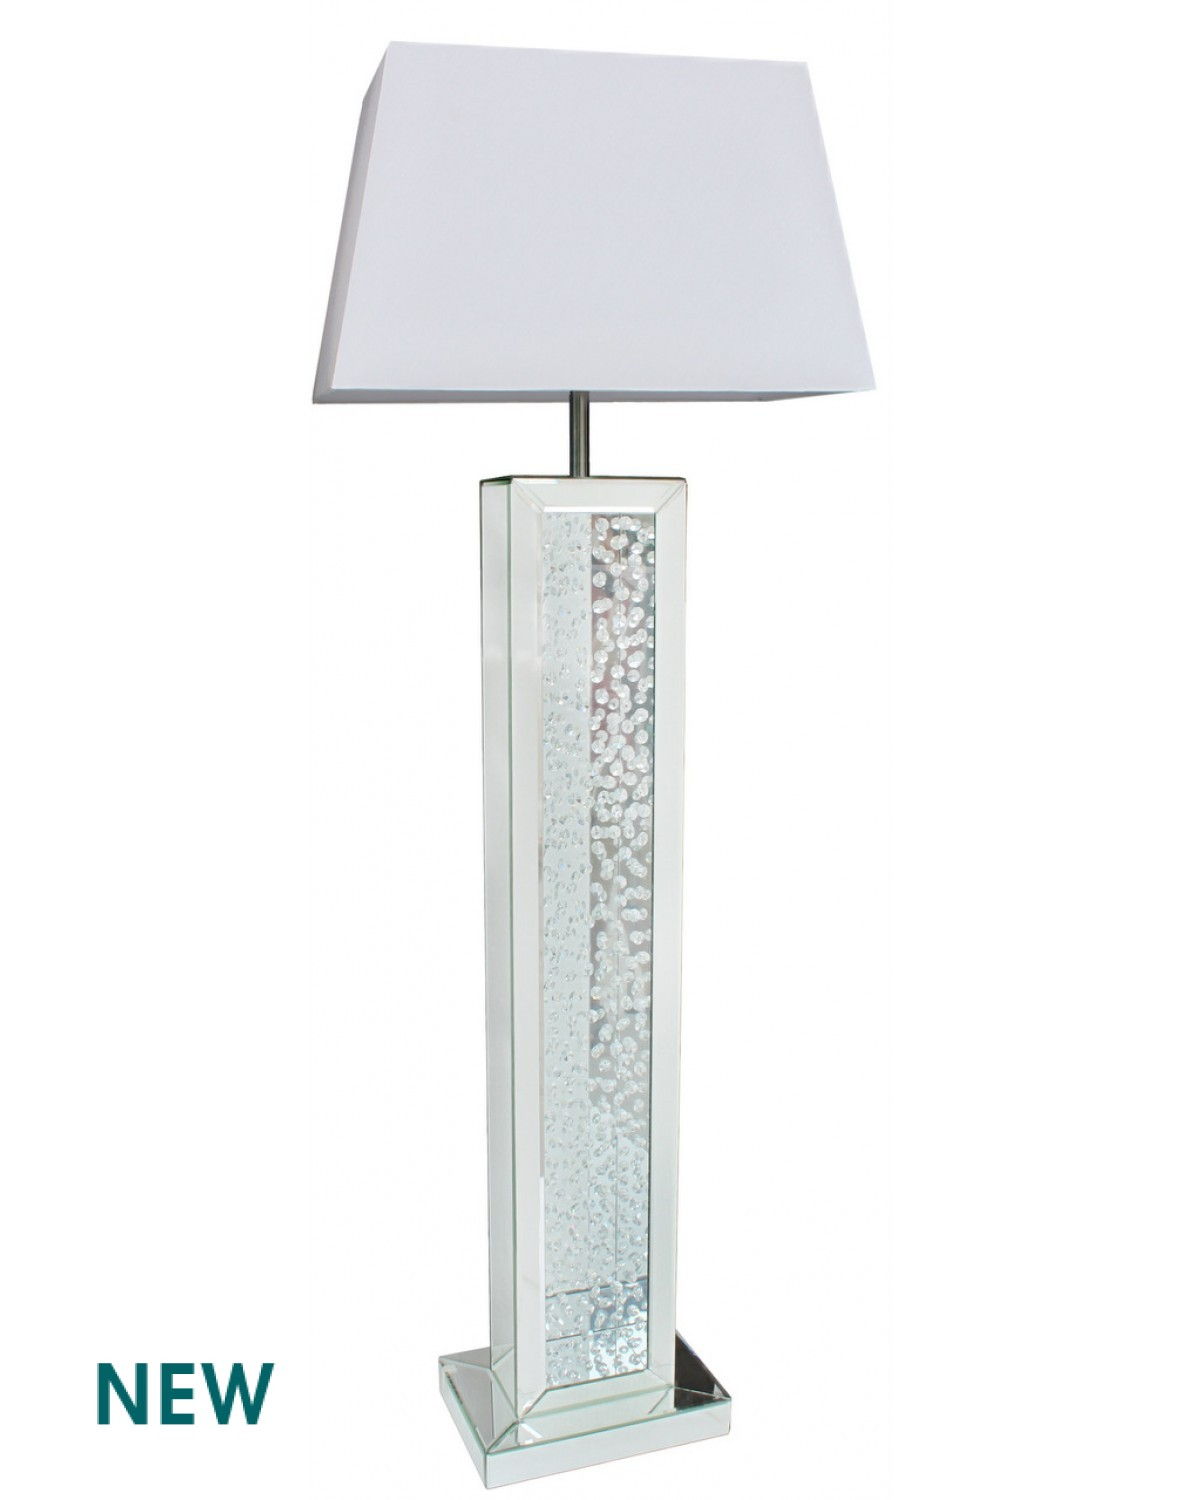 Crystal Mirrored Floor Lamp - Lamp Design Ideas